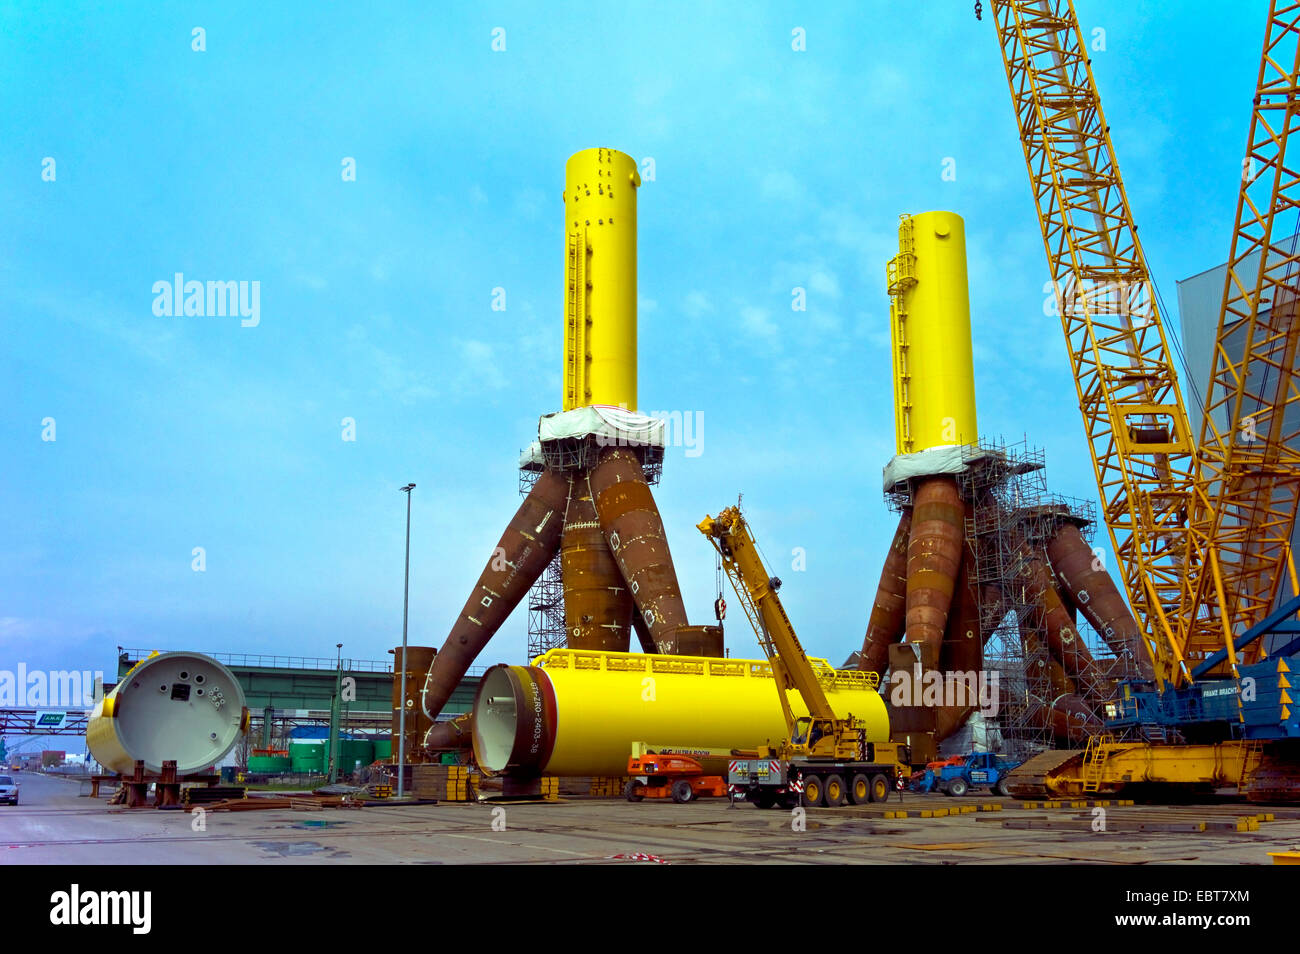 tripods for offshore wind farms in harbour, Germany, Labradorhafen, Bremerhaven - Stock Image